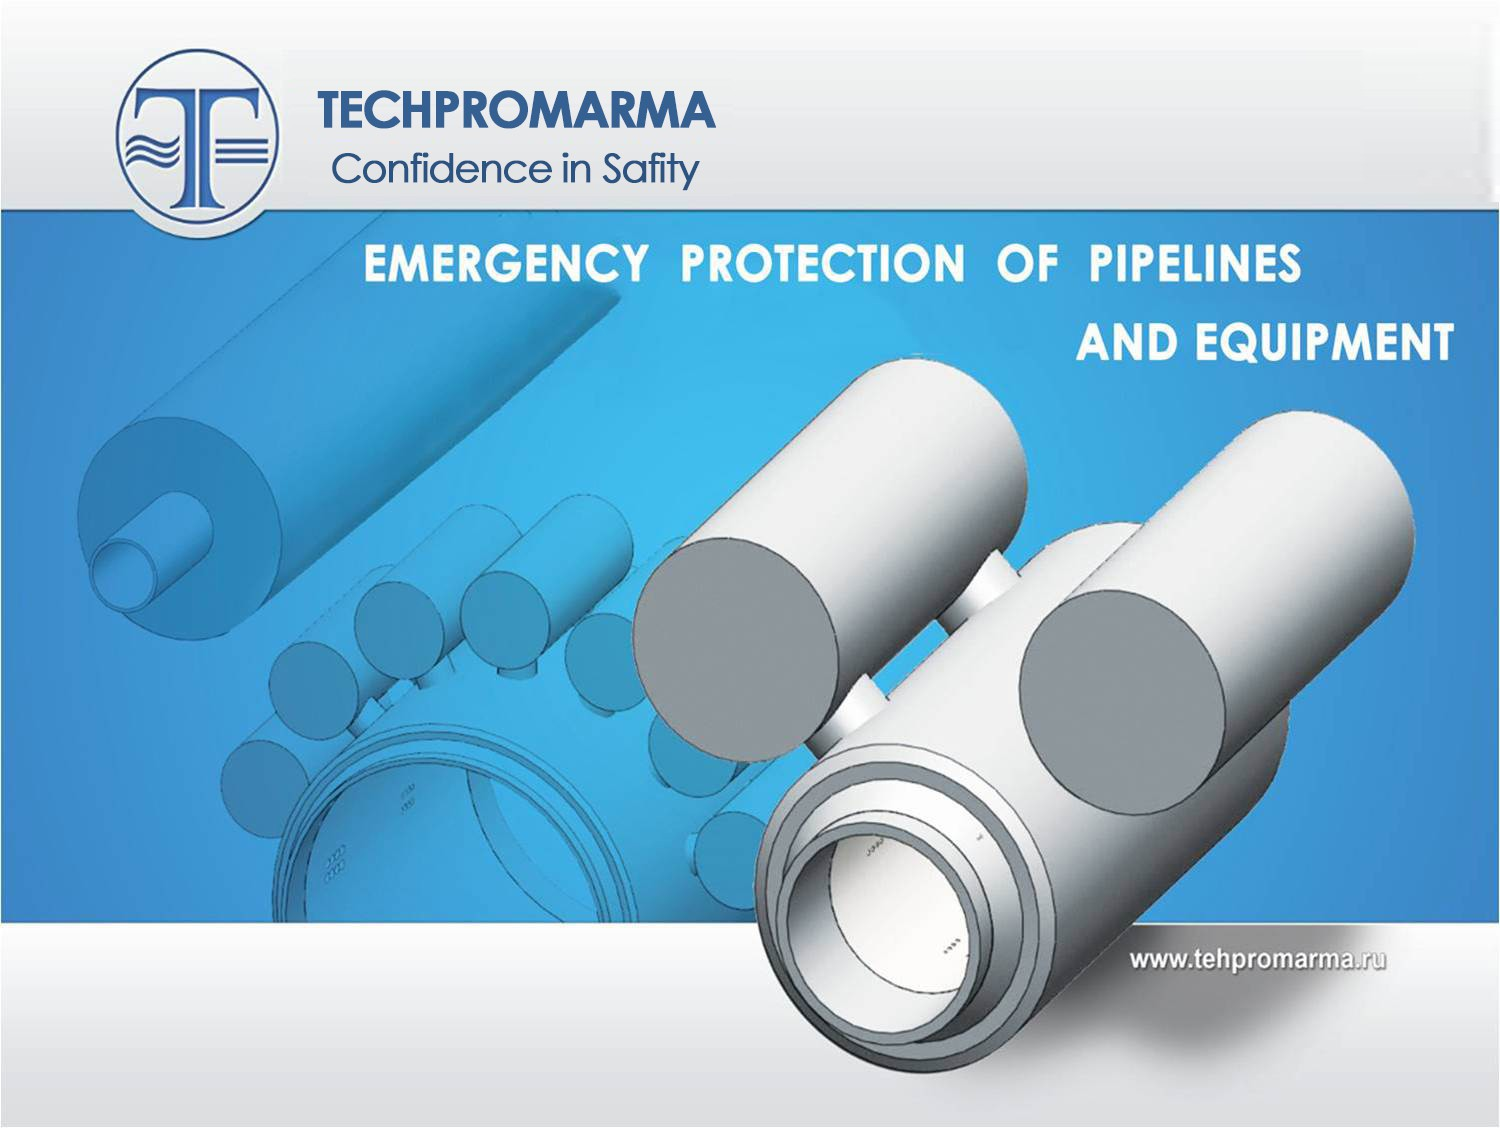 Emergency Protection of Pipelines and Equipment